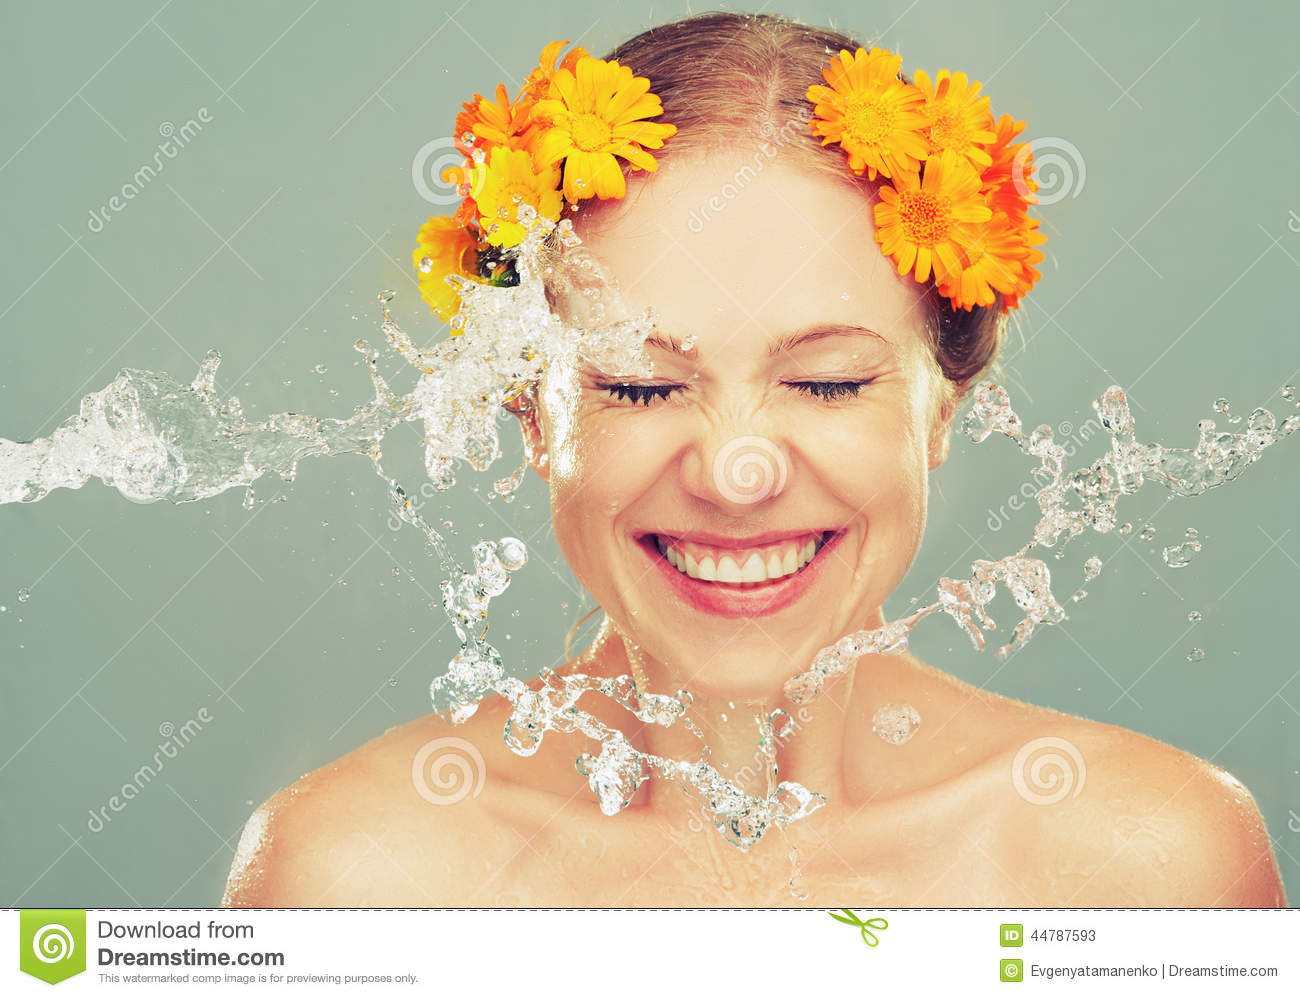 Download Beauty Laughing Girl With Splashes Of Water And Yellow Flowers Stock Image - Image of hygiene, portrait: 44787593